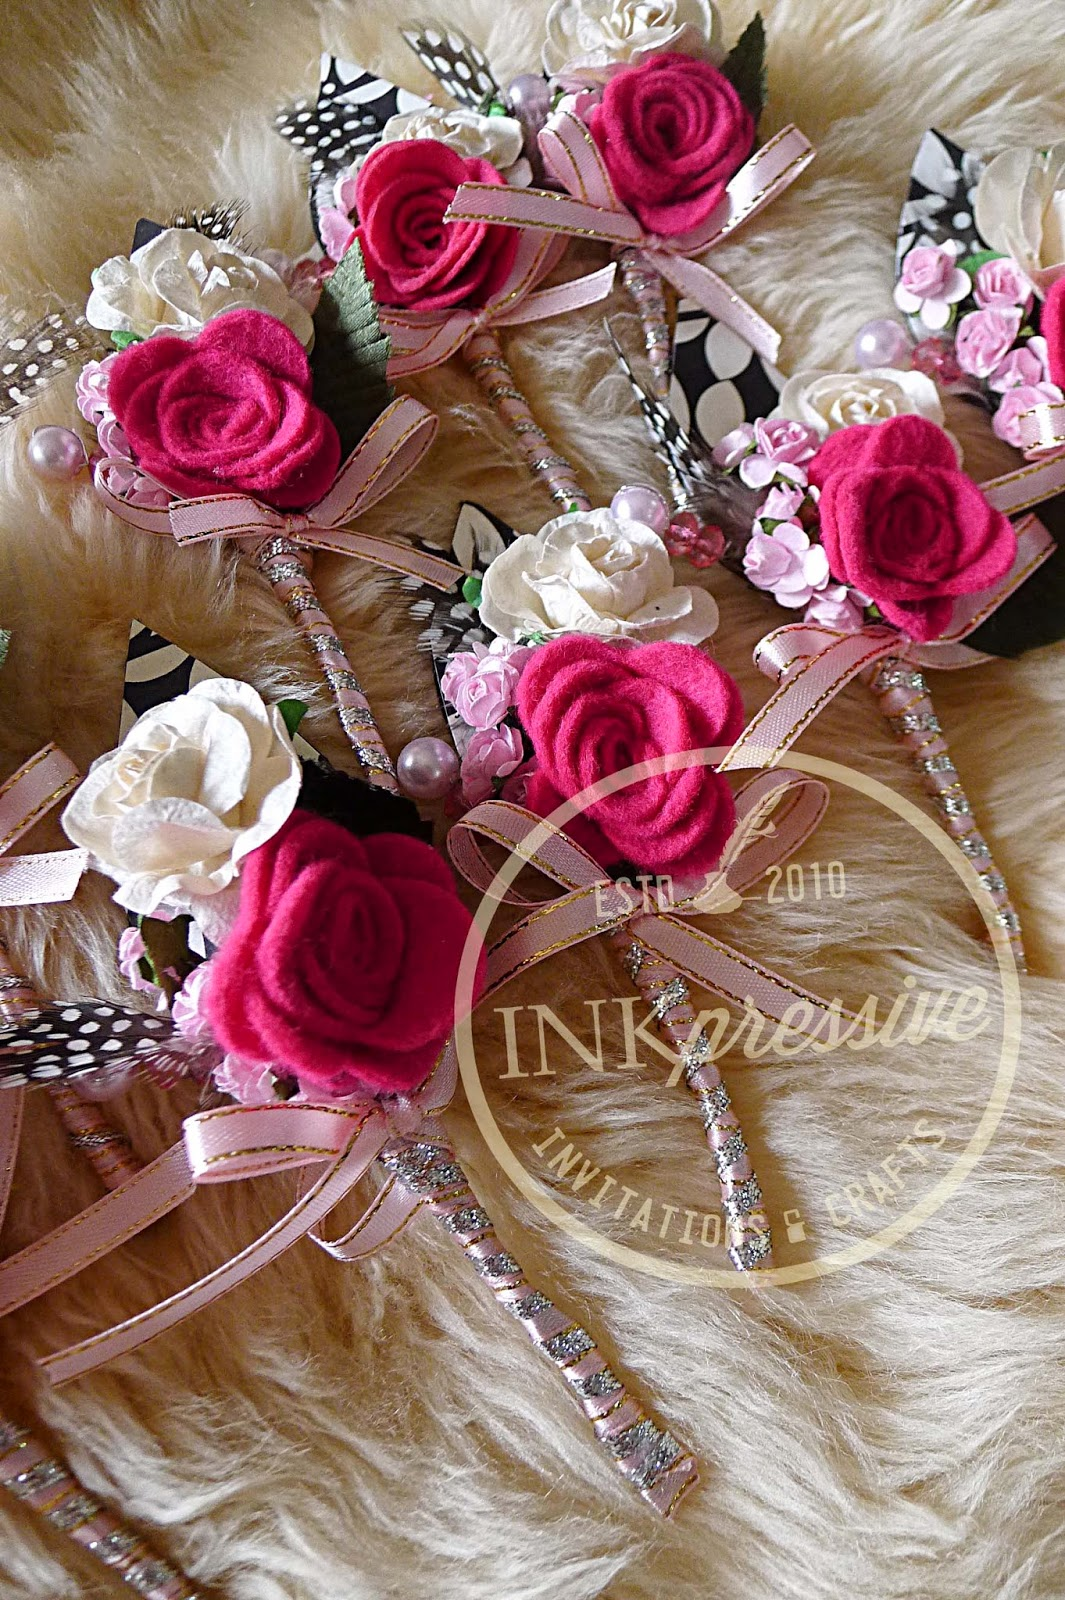 Inkpressive invitations diy party accessories felt paper roses feathers beads ribbon mightylinksfo